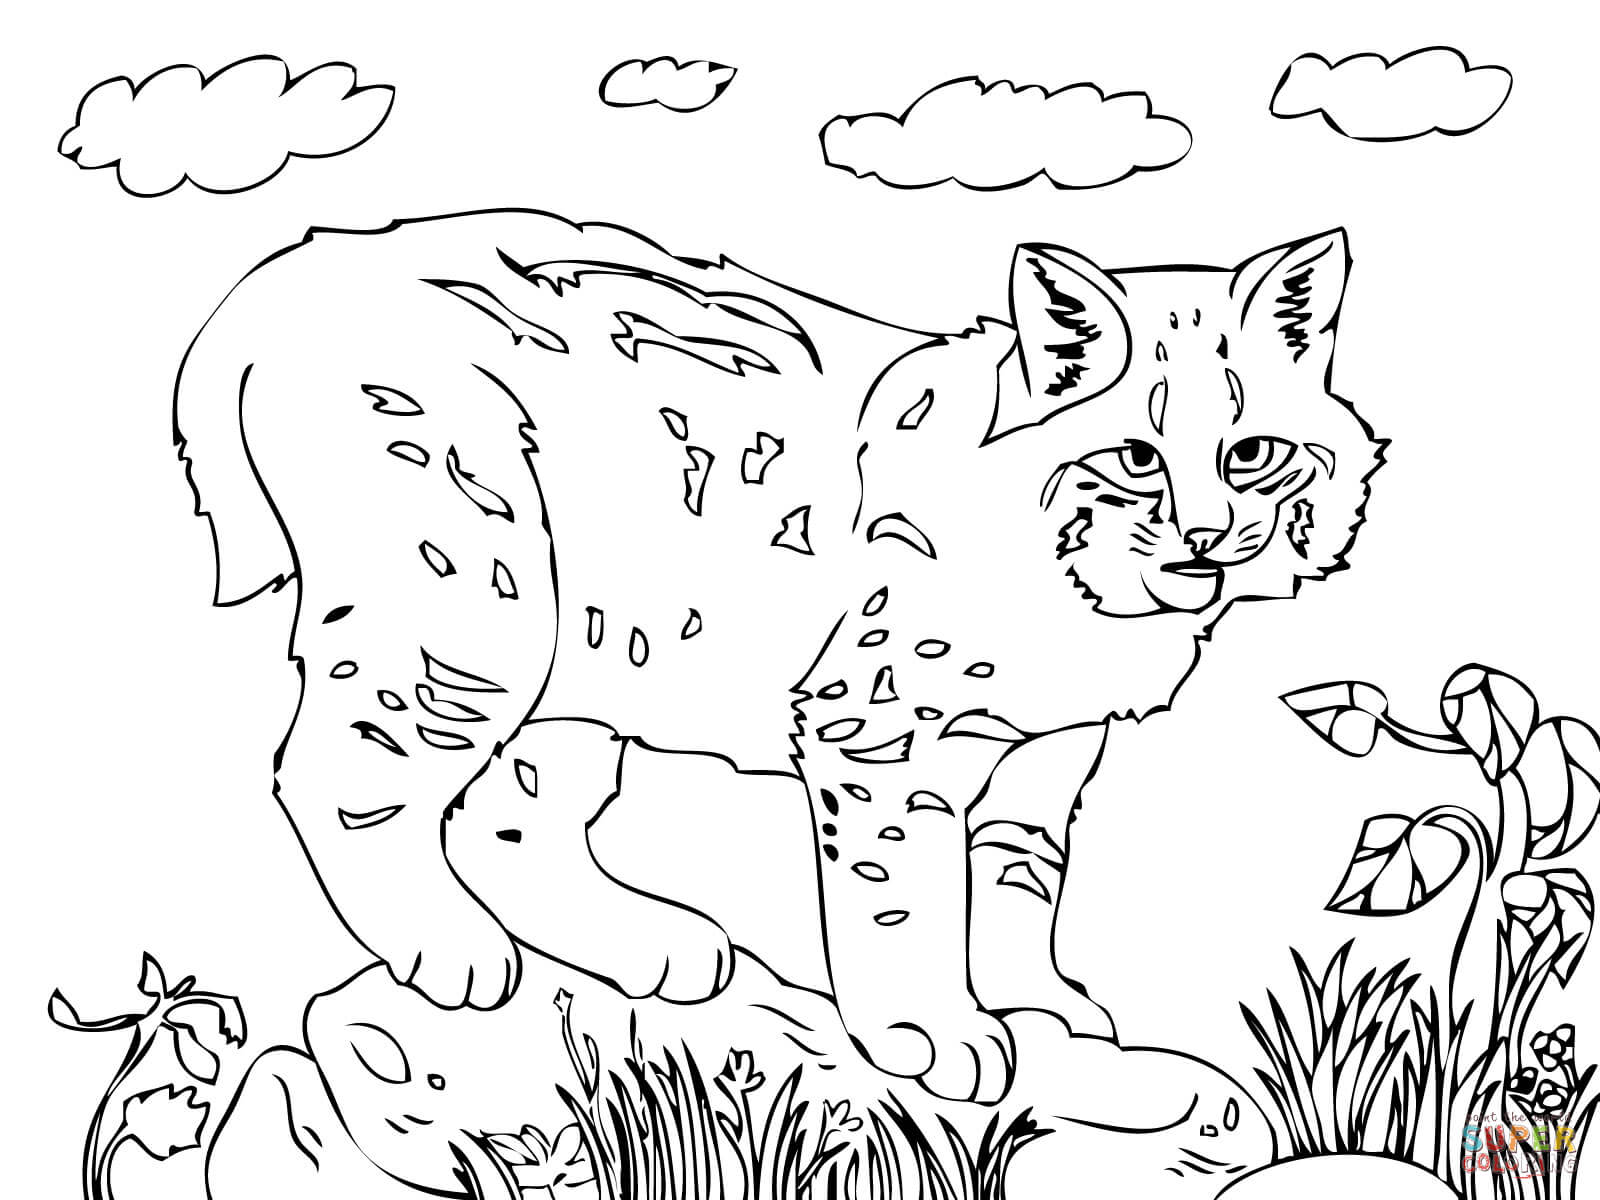 Bobcat Drawing At Getdrawings